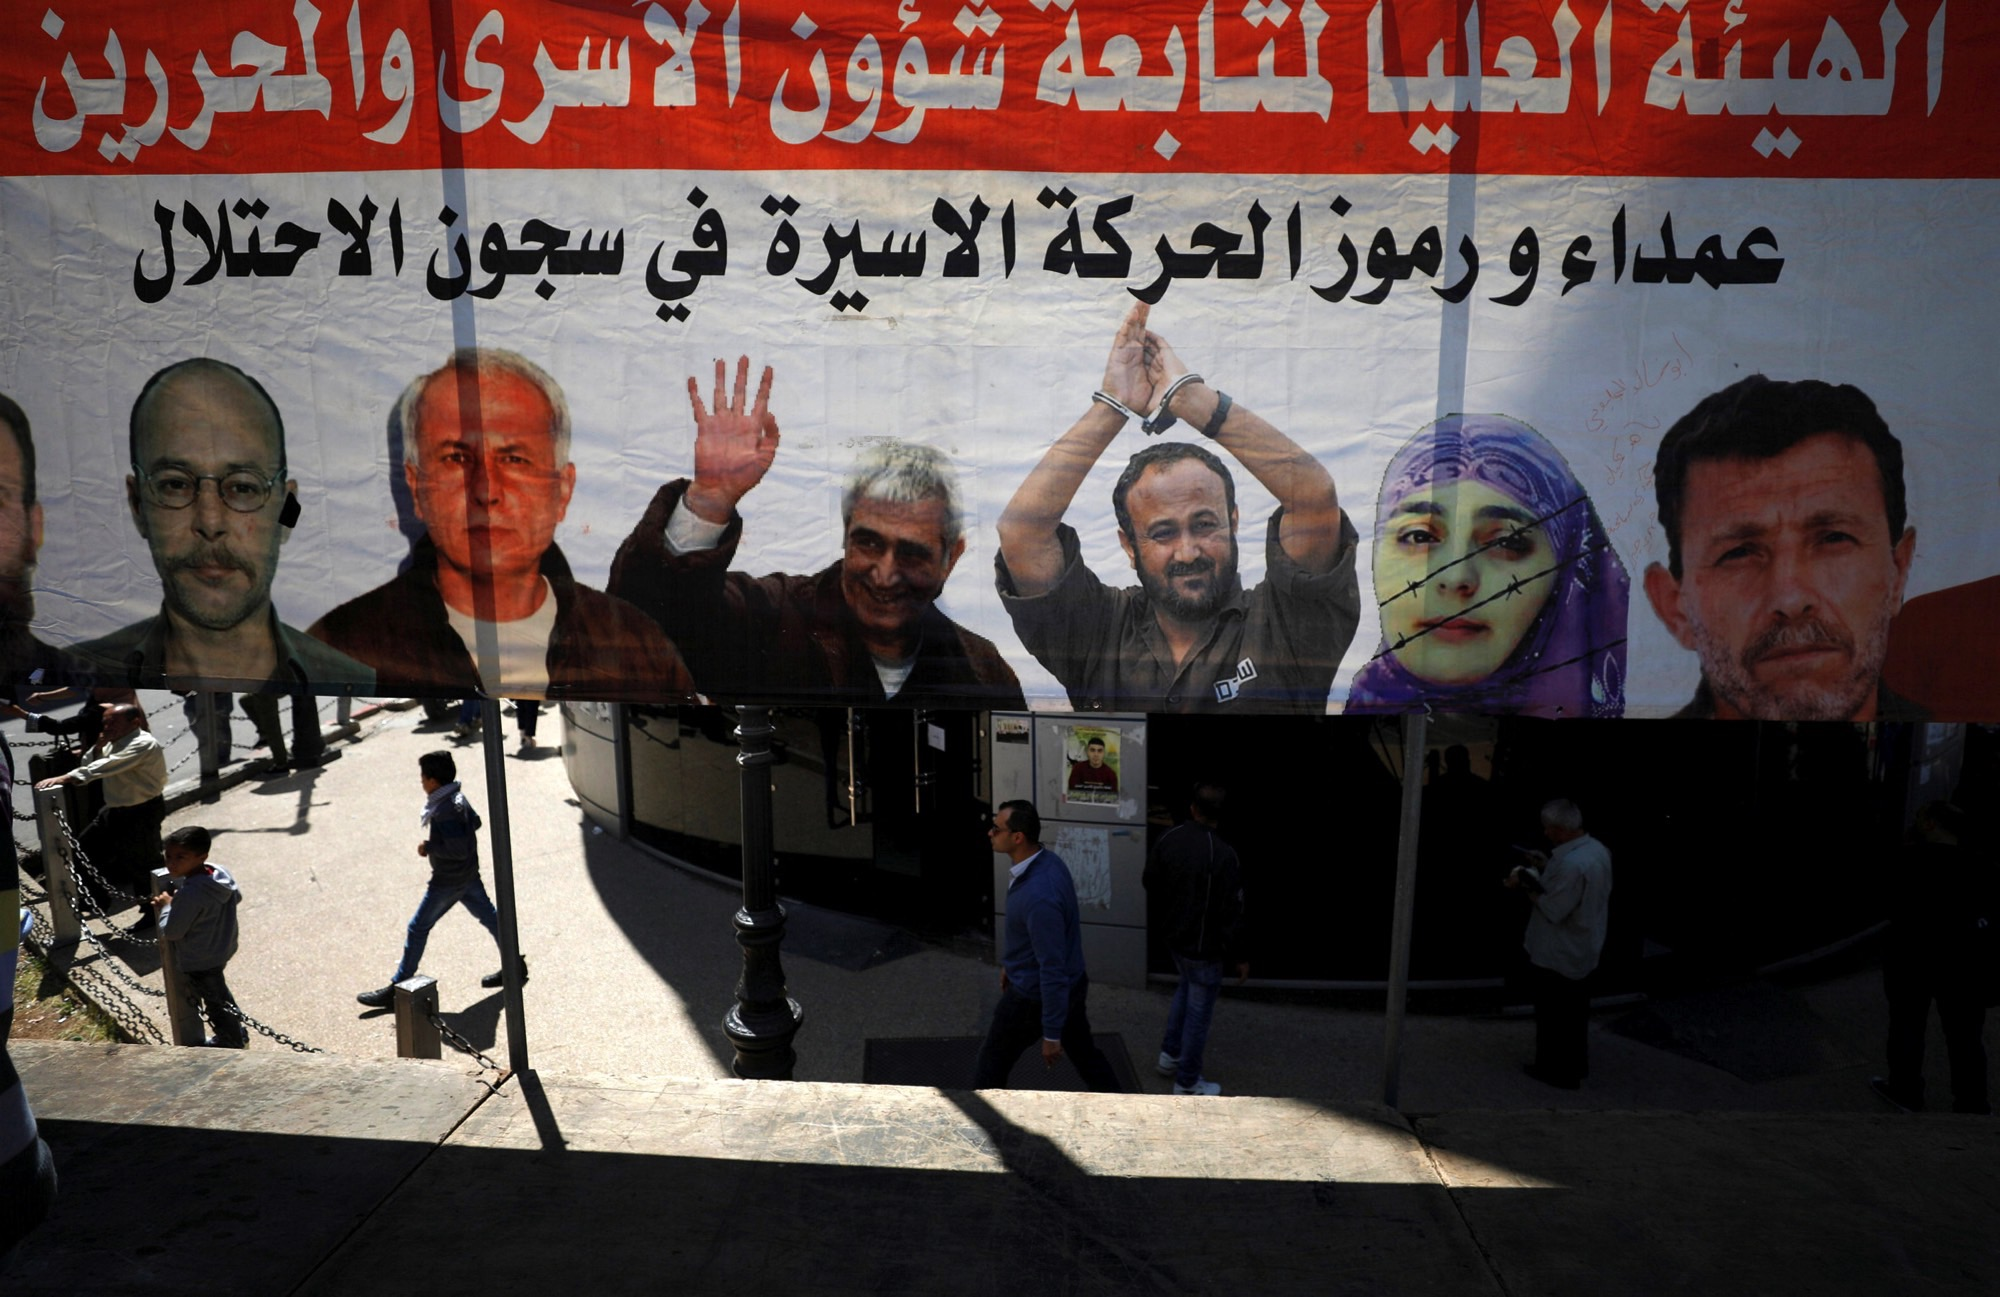 People walk past a poster depicting Palestinian prisoners held in Israeli jails, in the West Bank city of Ramallah April 17, 2017. Credit: Reuters/Mohamad Torokman